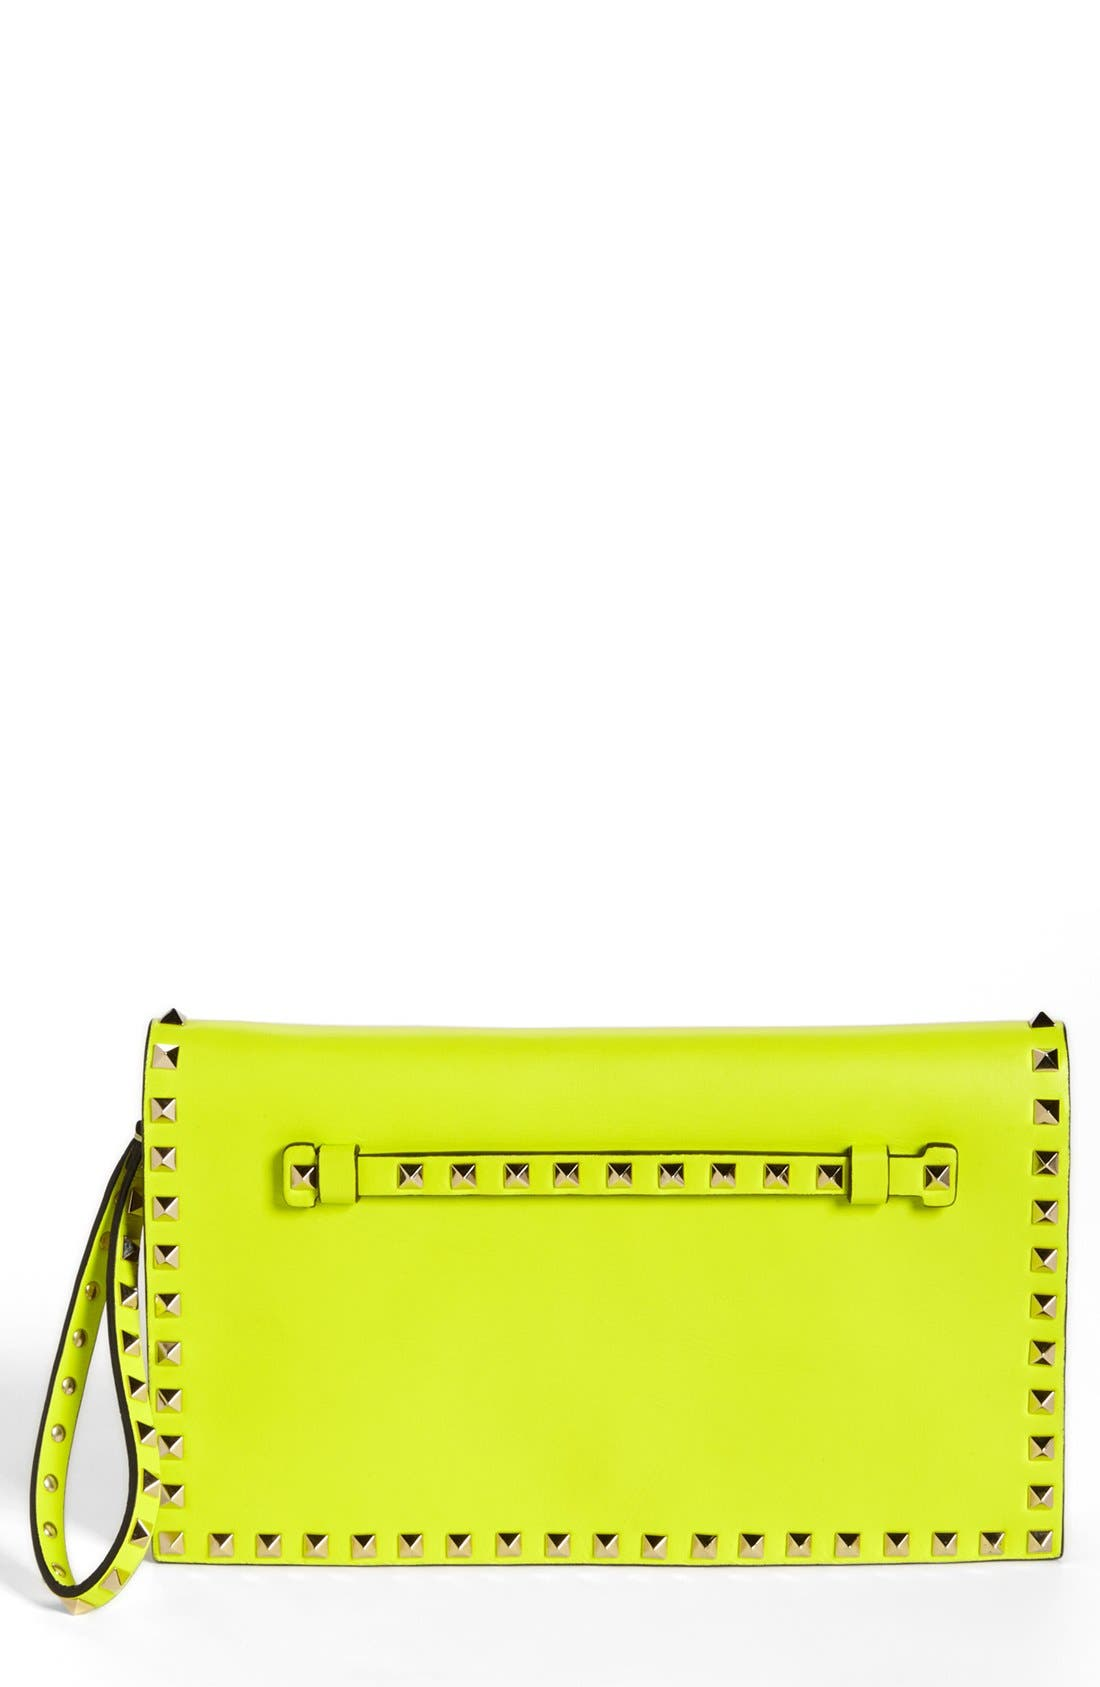 Alternate Image 1 Selected - Valentino 'Rockstud' Flap Clutch